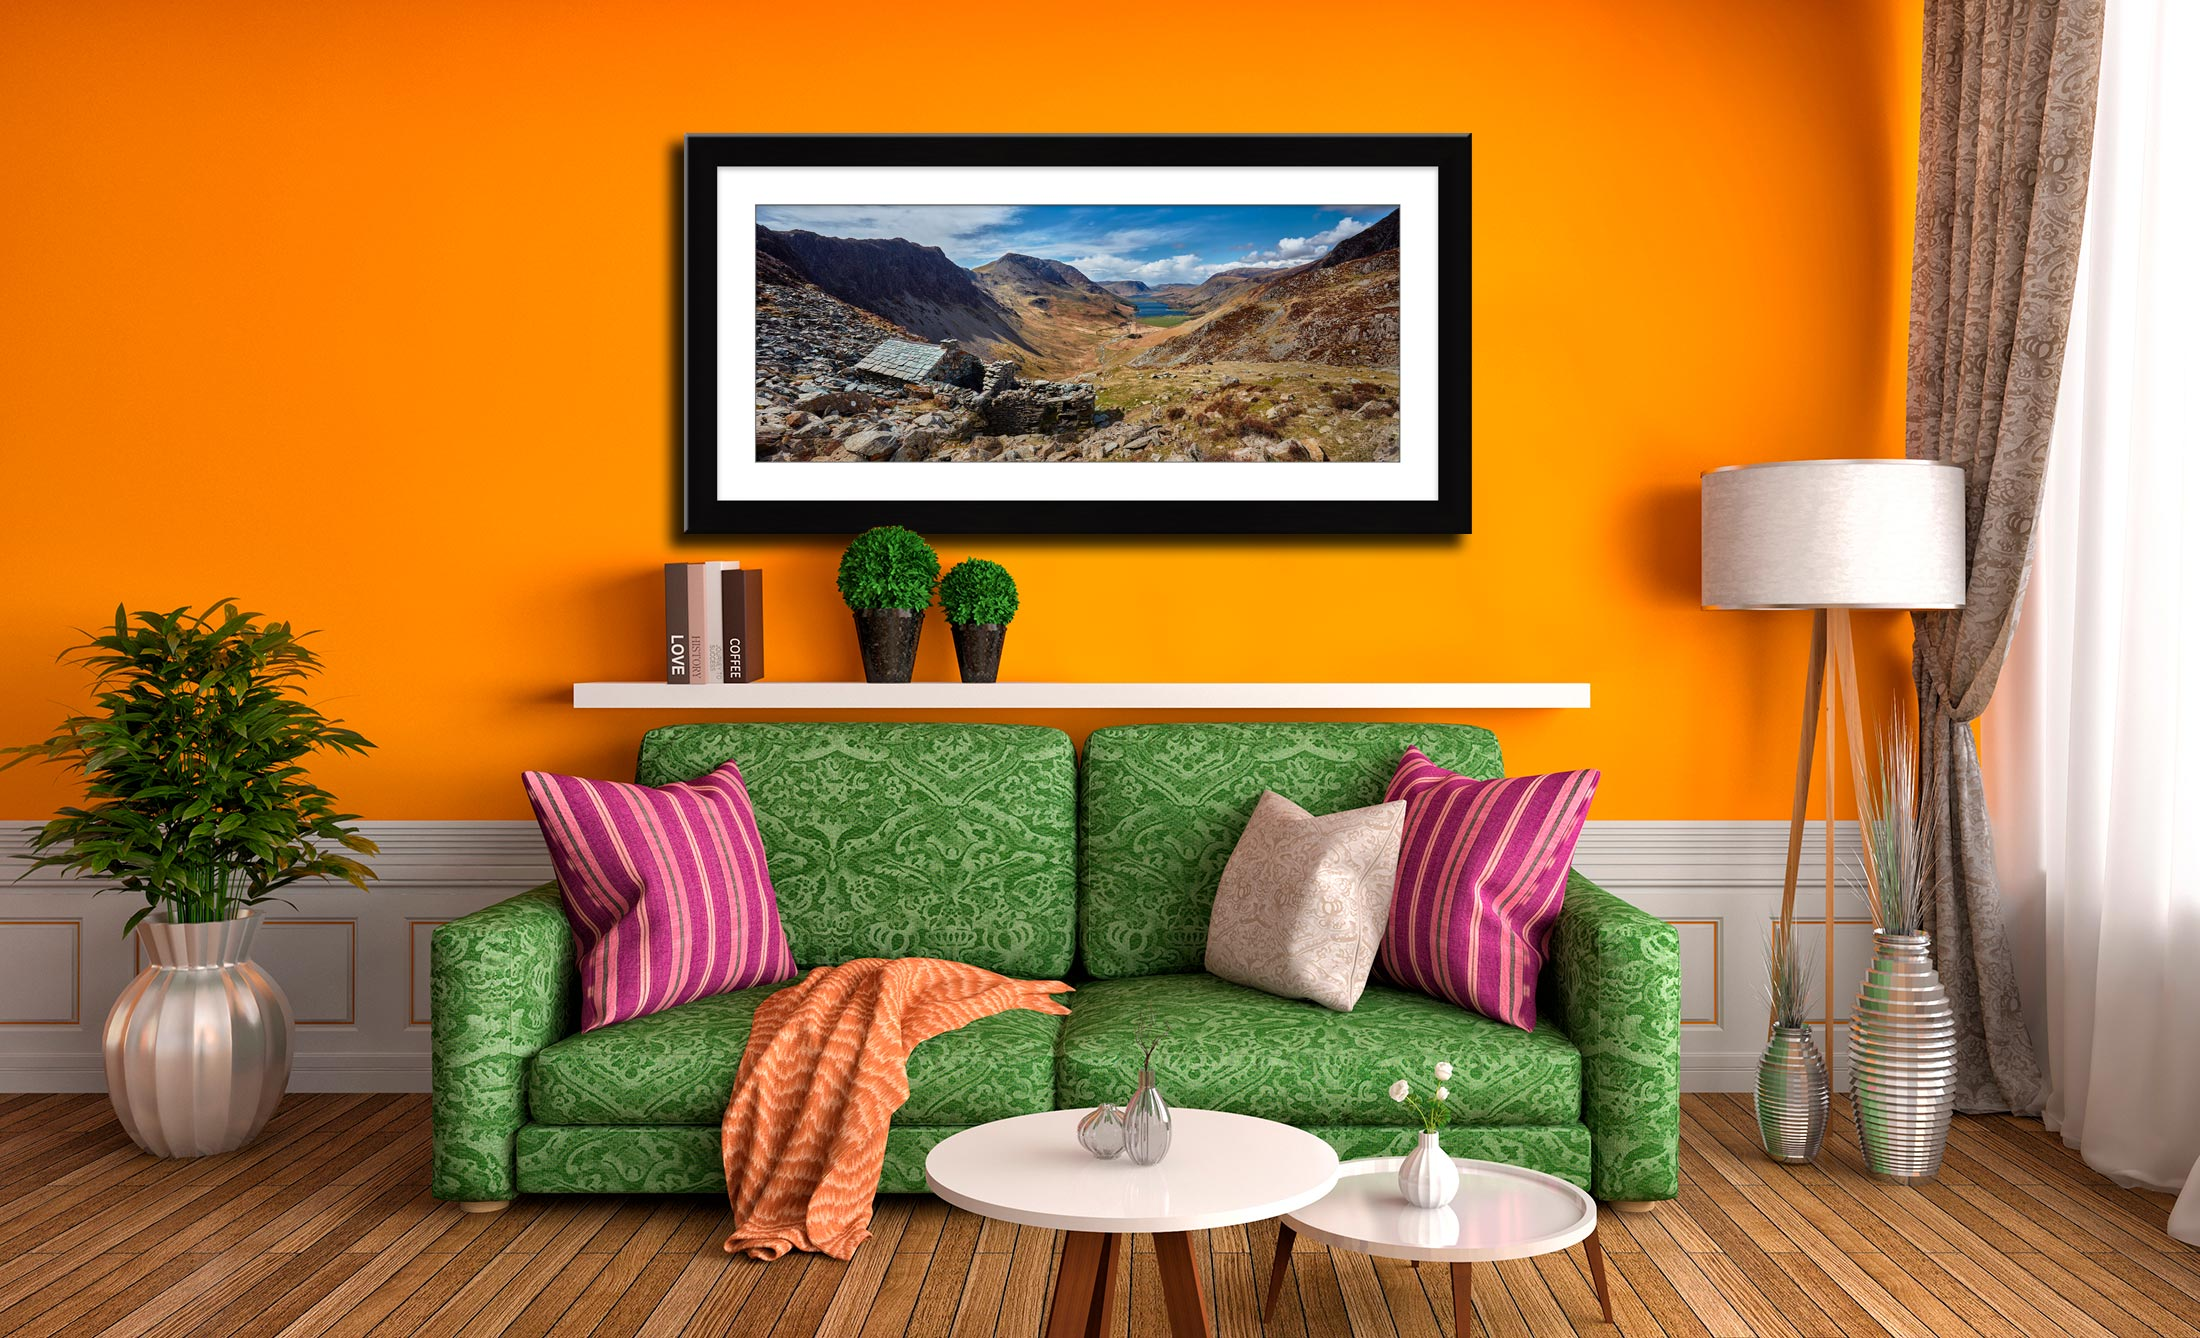 Warnscale Bothy and Buttermere Valley - Framed Print with Mount on Wall